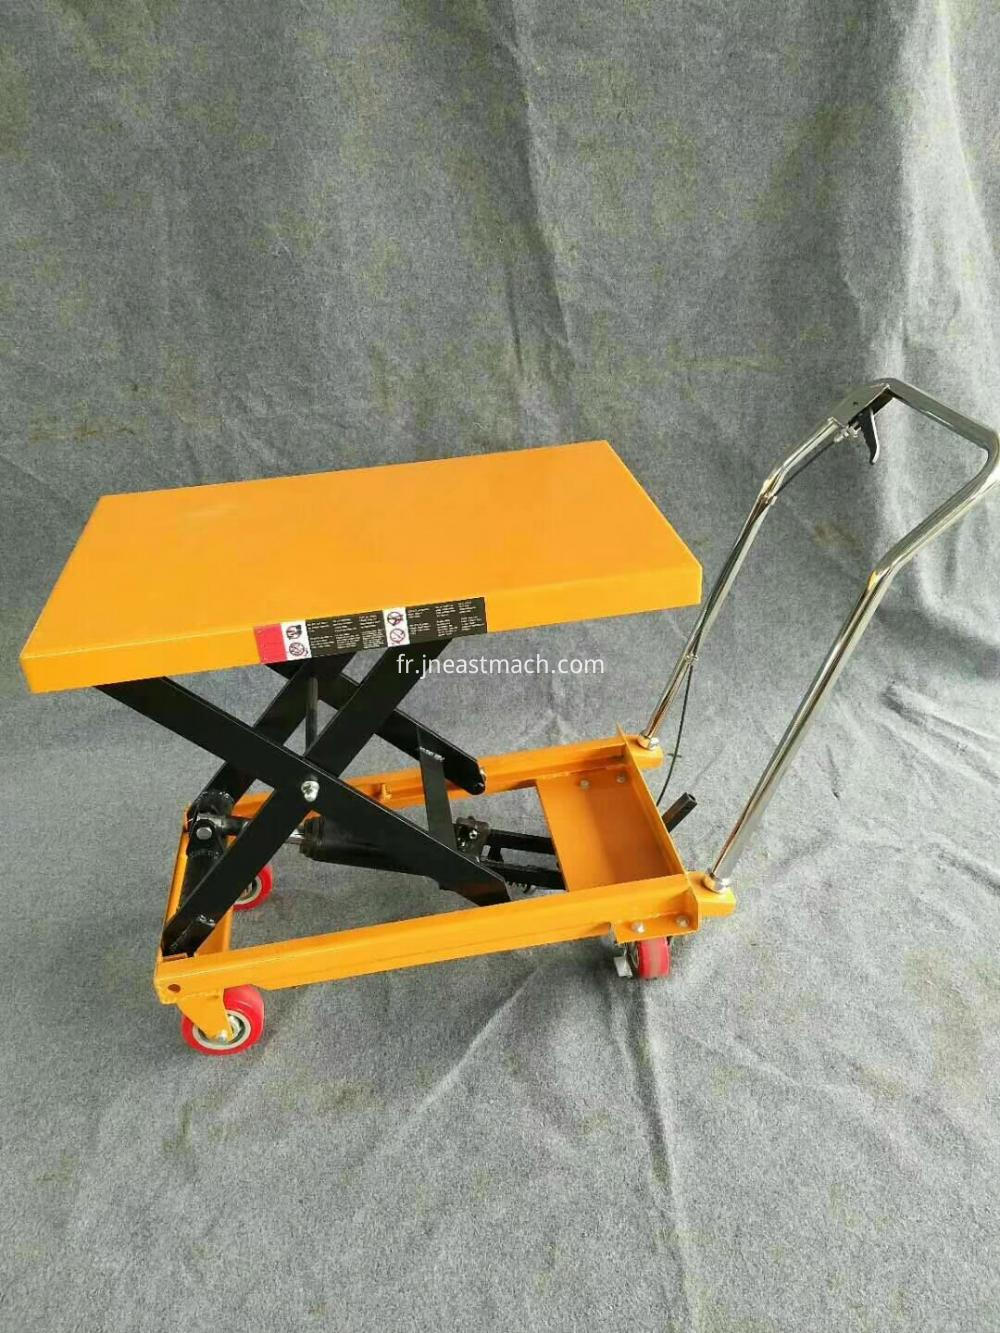 1 7m Warehouse Trolley Manual Hydraulic Scissor Lift Cart